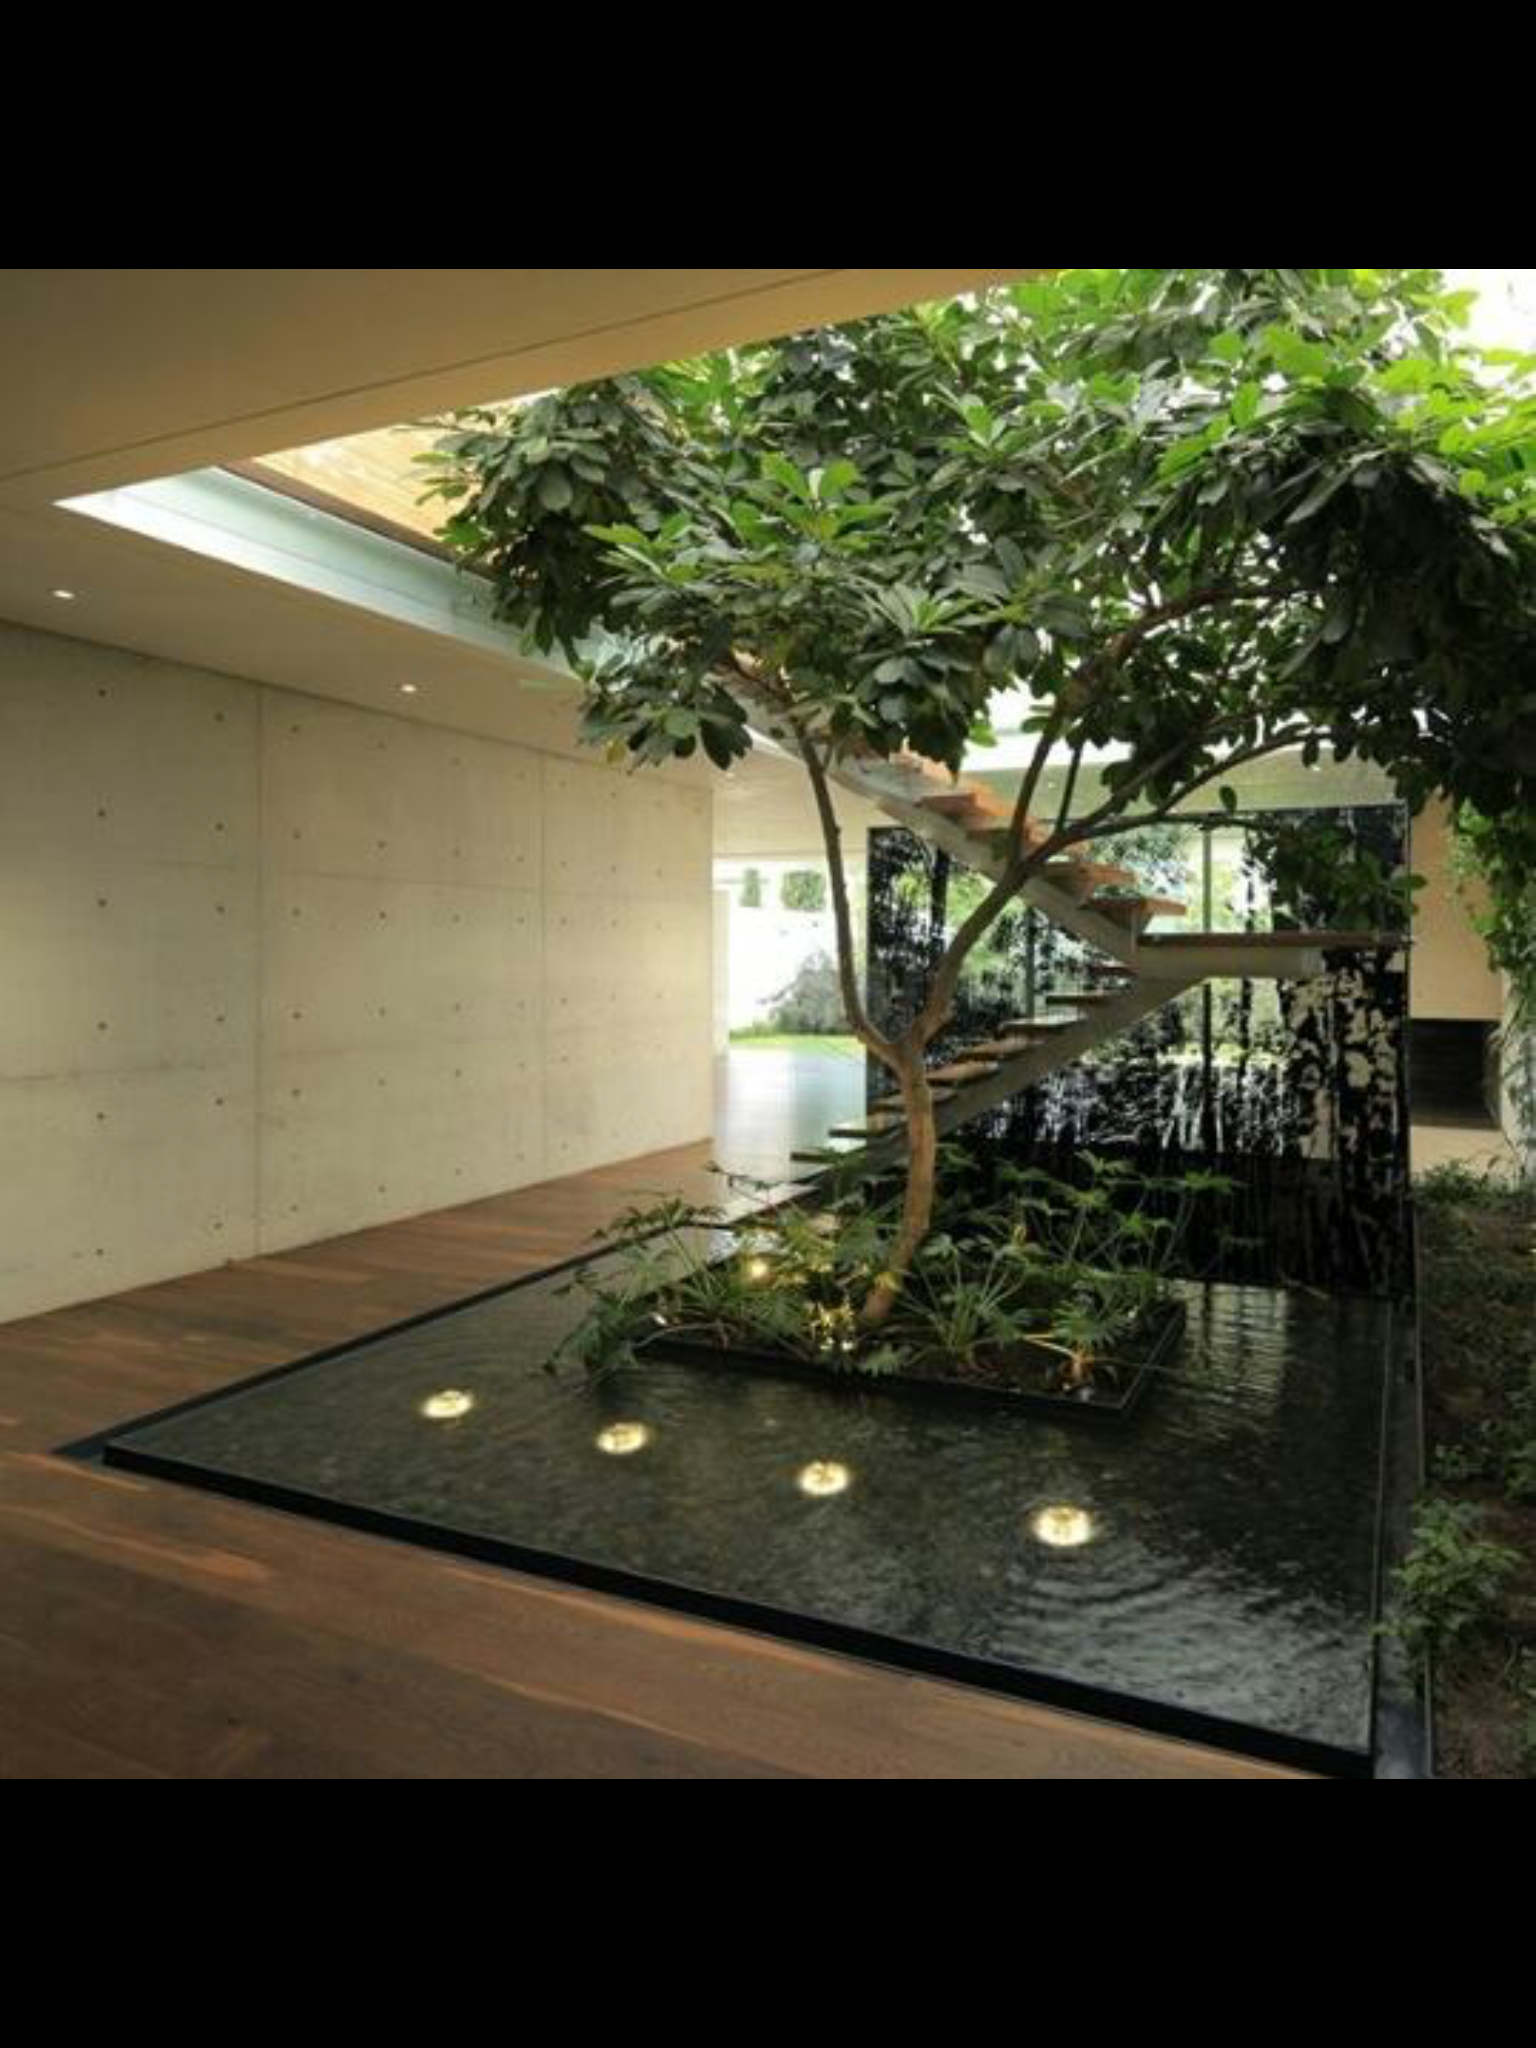 Minimalist home | Interior Garden, Interior Ideas, Interior ... on interior herb garden, interior japanese garden, interior feng shui garden, interior design garden, interior modern garden, interior chinese garden, interior water garden, interior rock garden, interior urban garden, interior botanical garden,